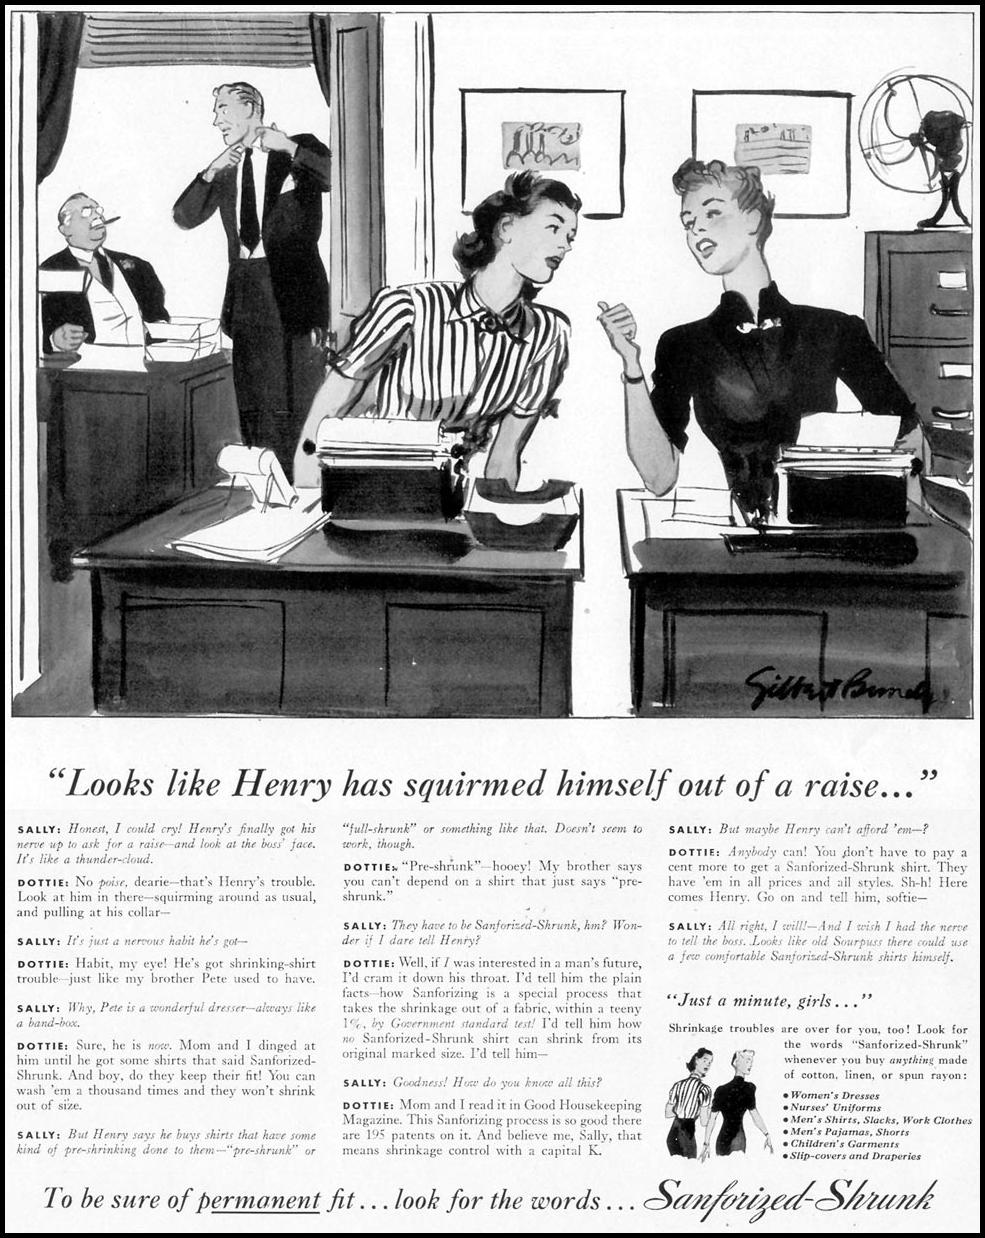 SANFORIZED-SHRUNK SHIRTS LIFE 12/12/1938 p. 10